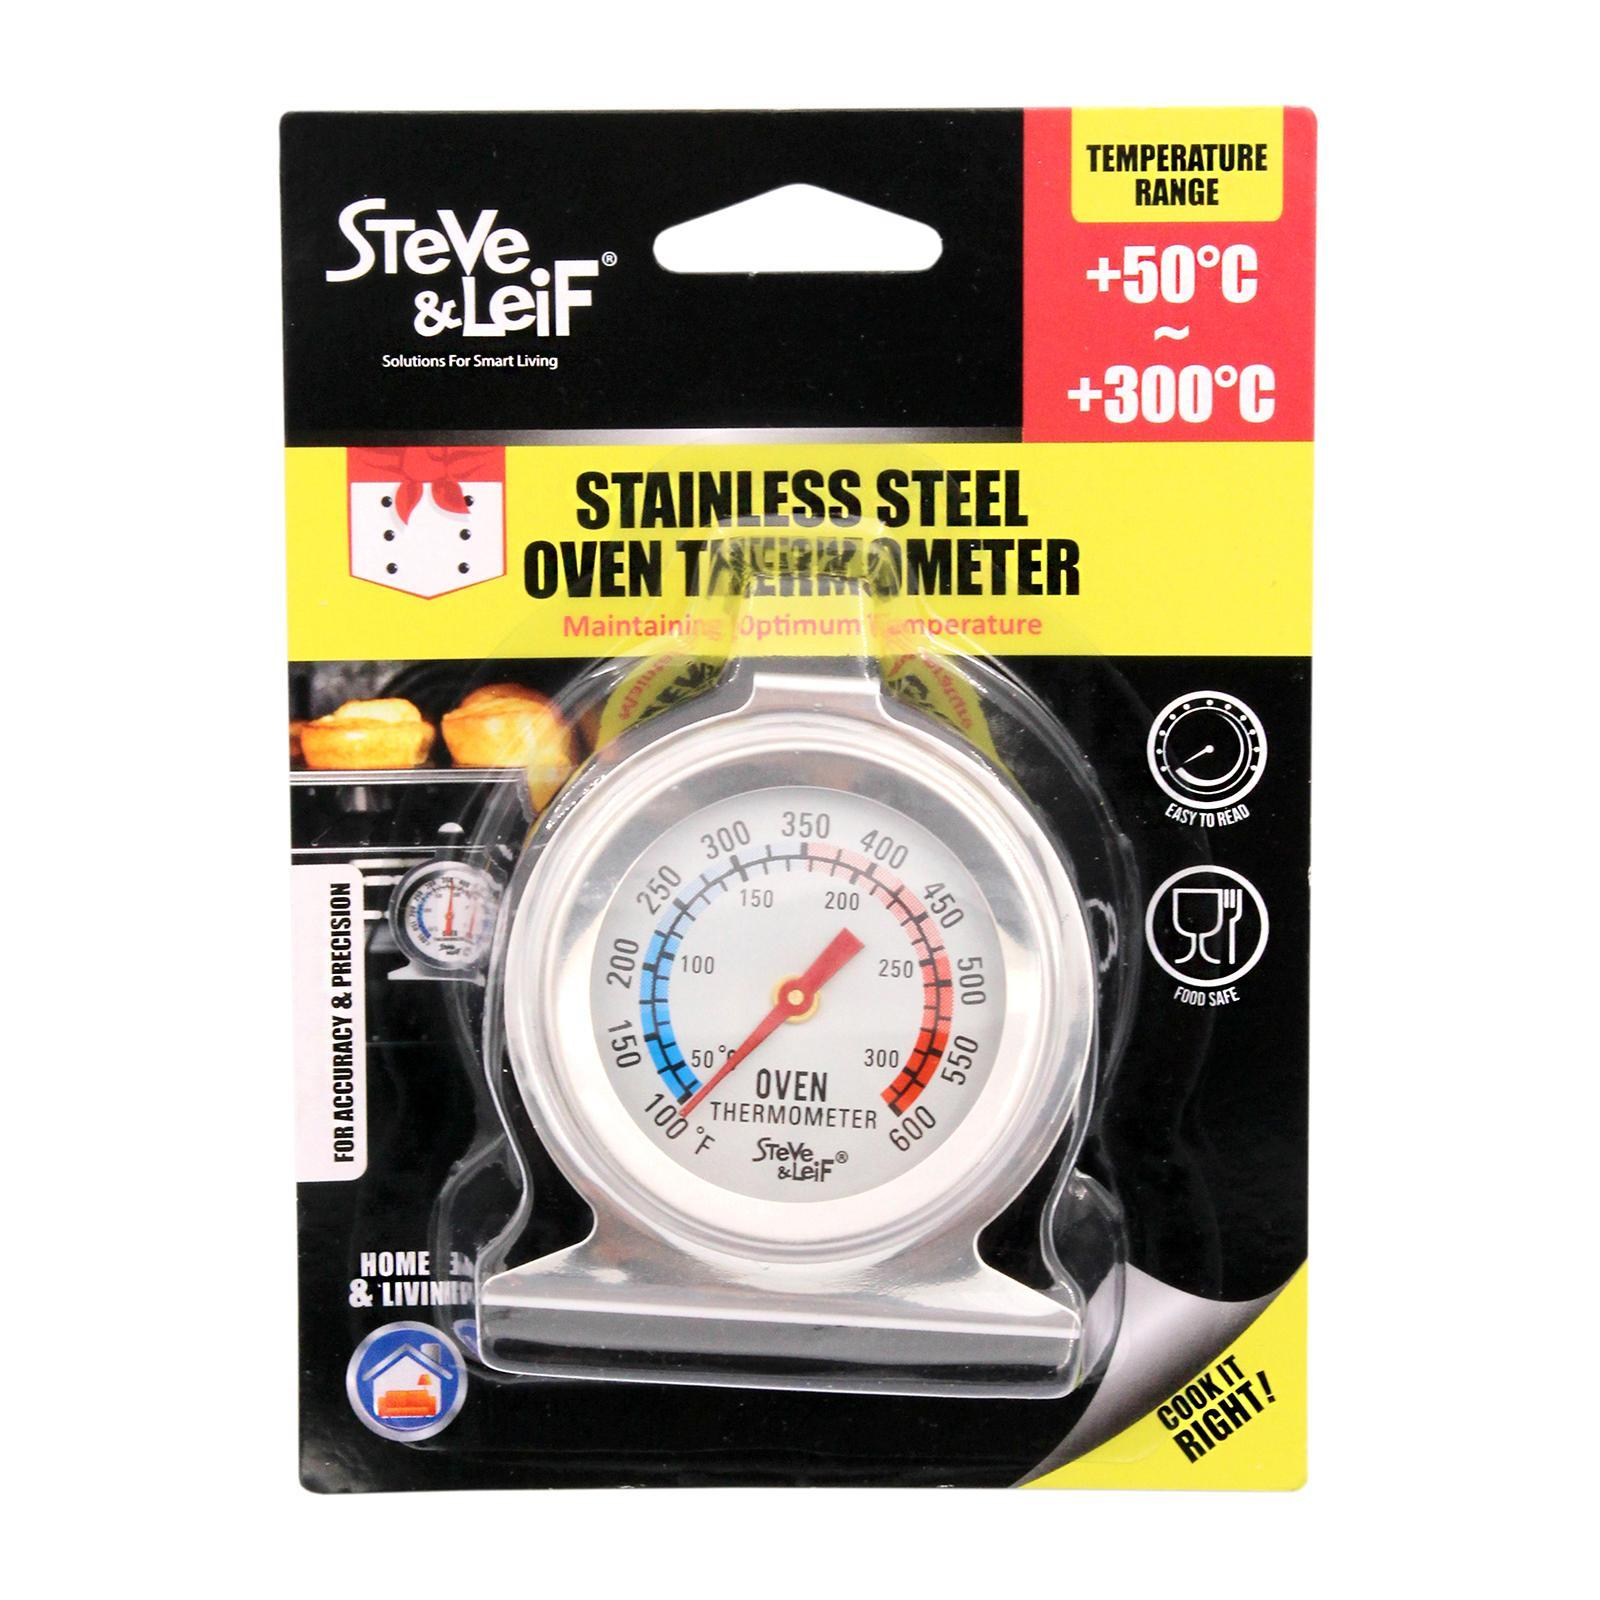 Steve & Leif Kitchen Convection Oven Thermometer